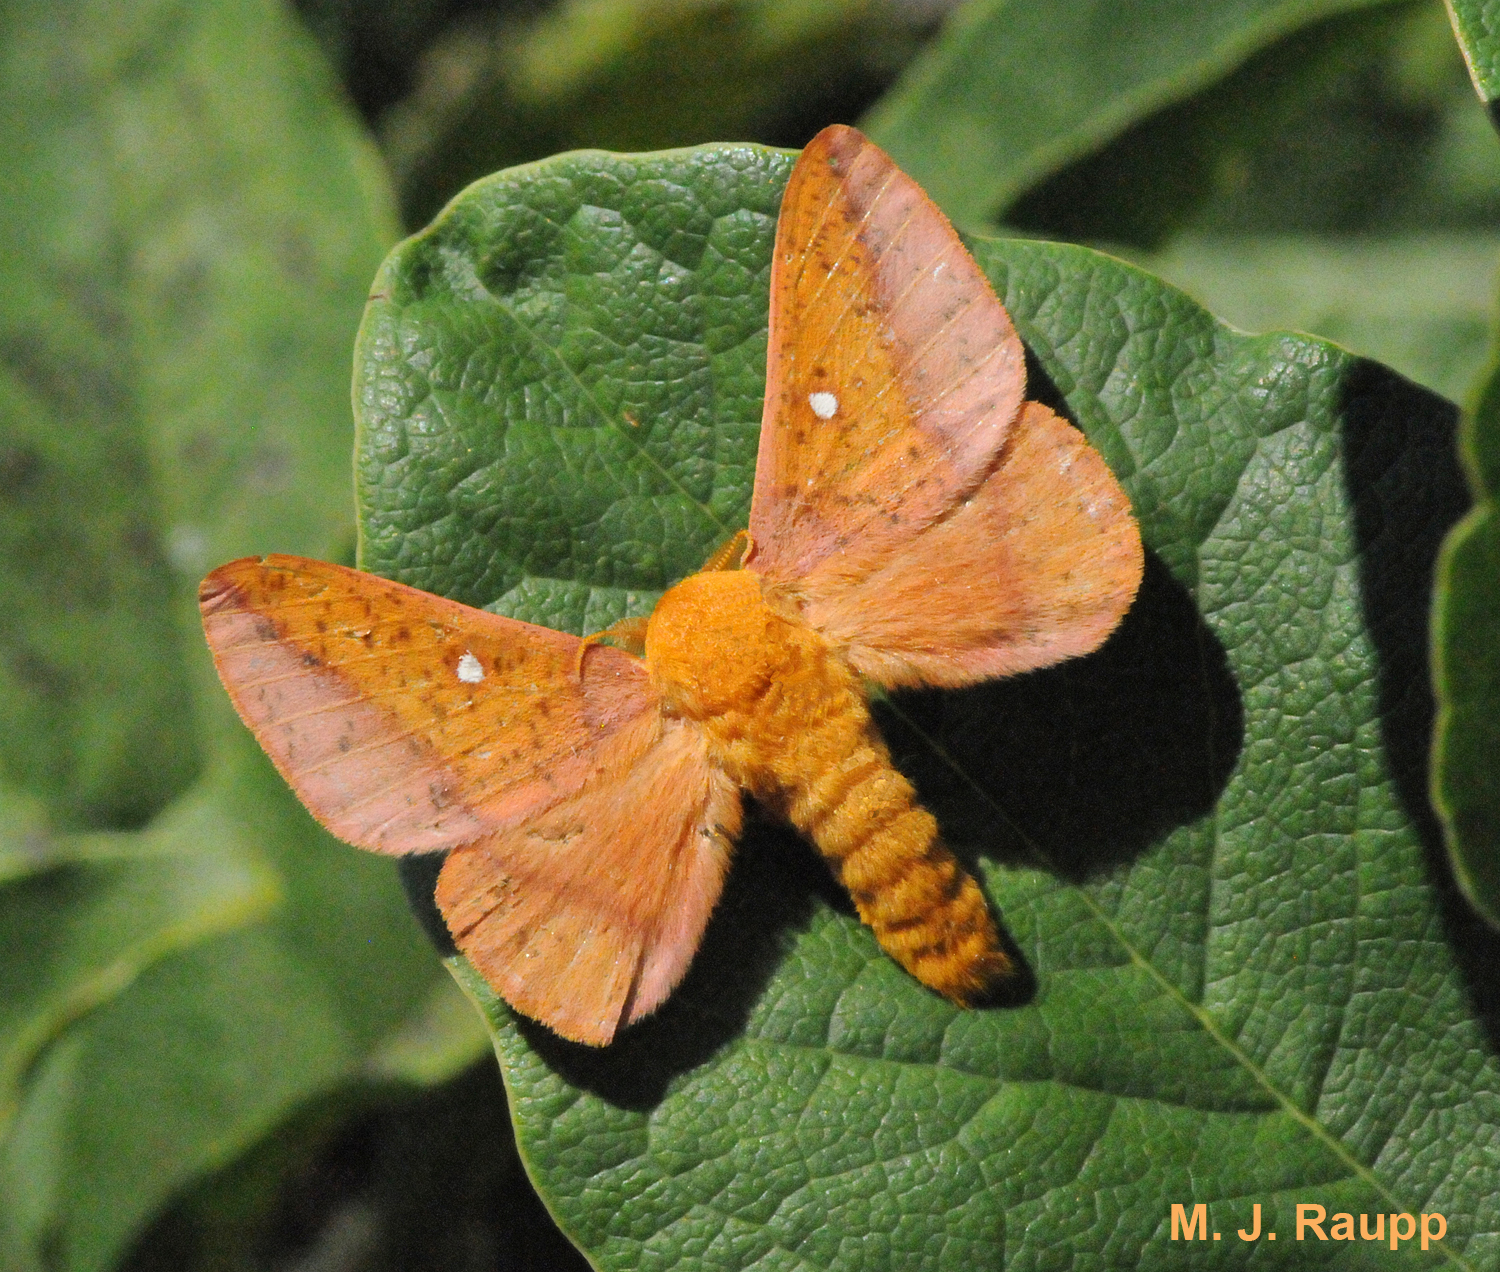 The handsome adult orangestriped oakworm is a moth covered in fur-like scales.